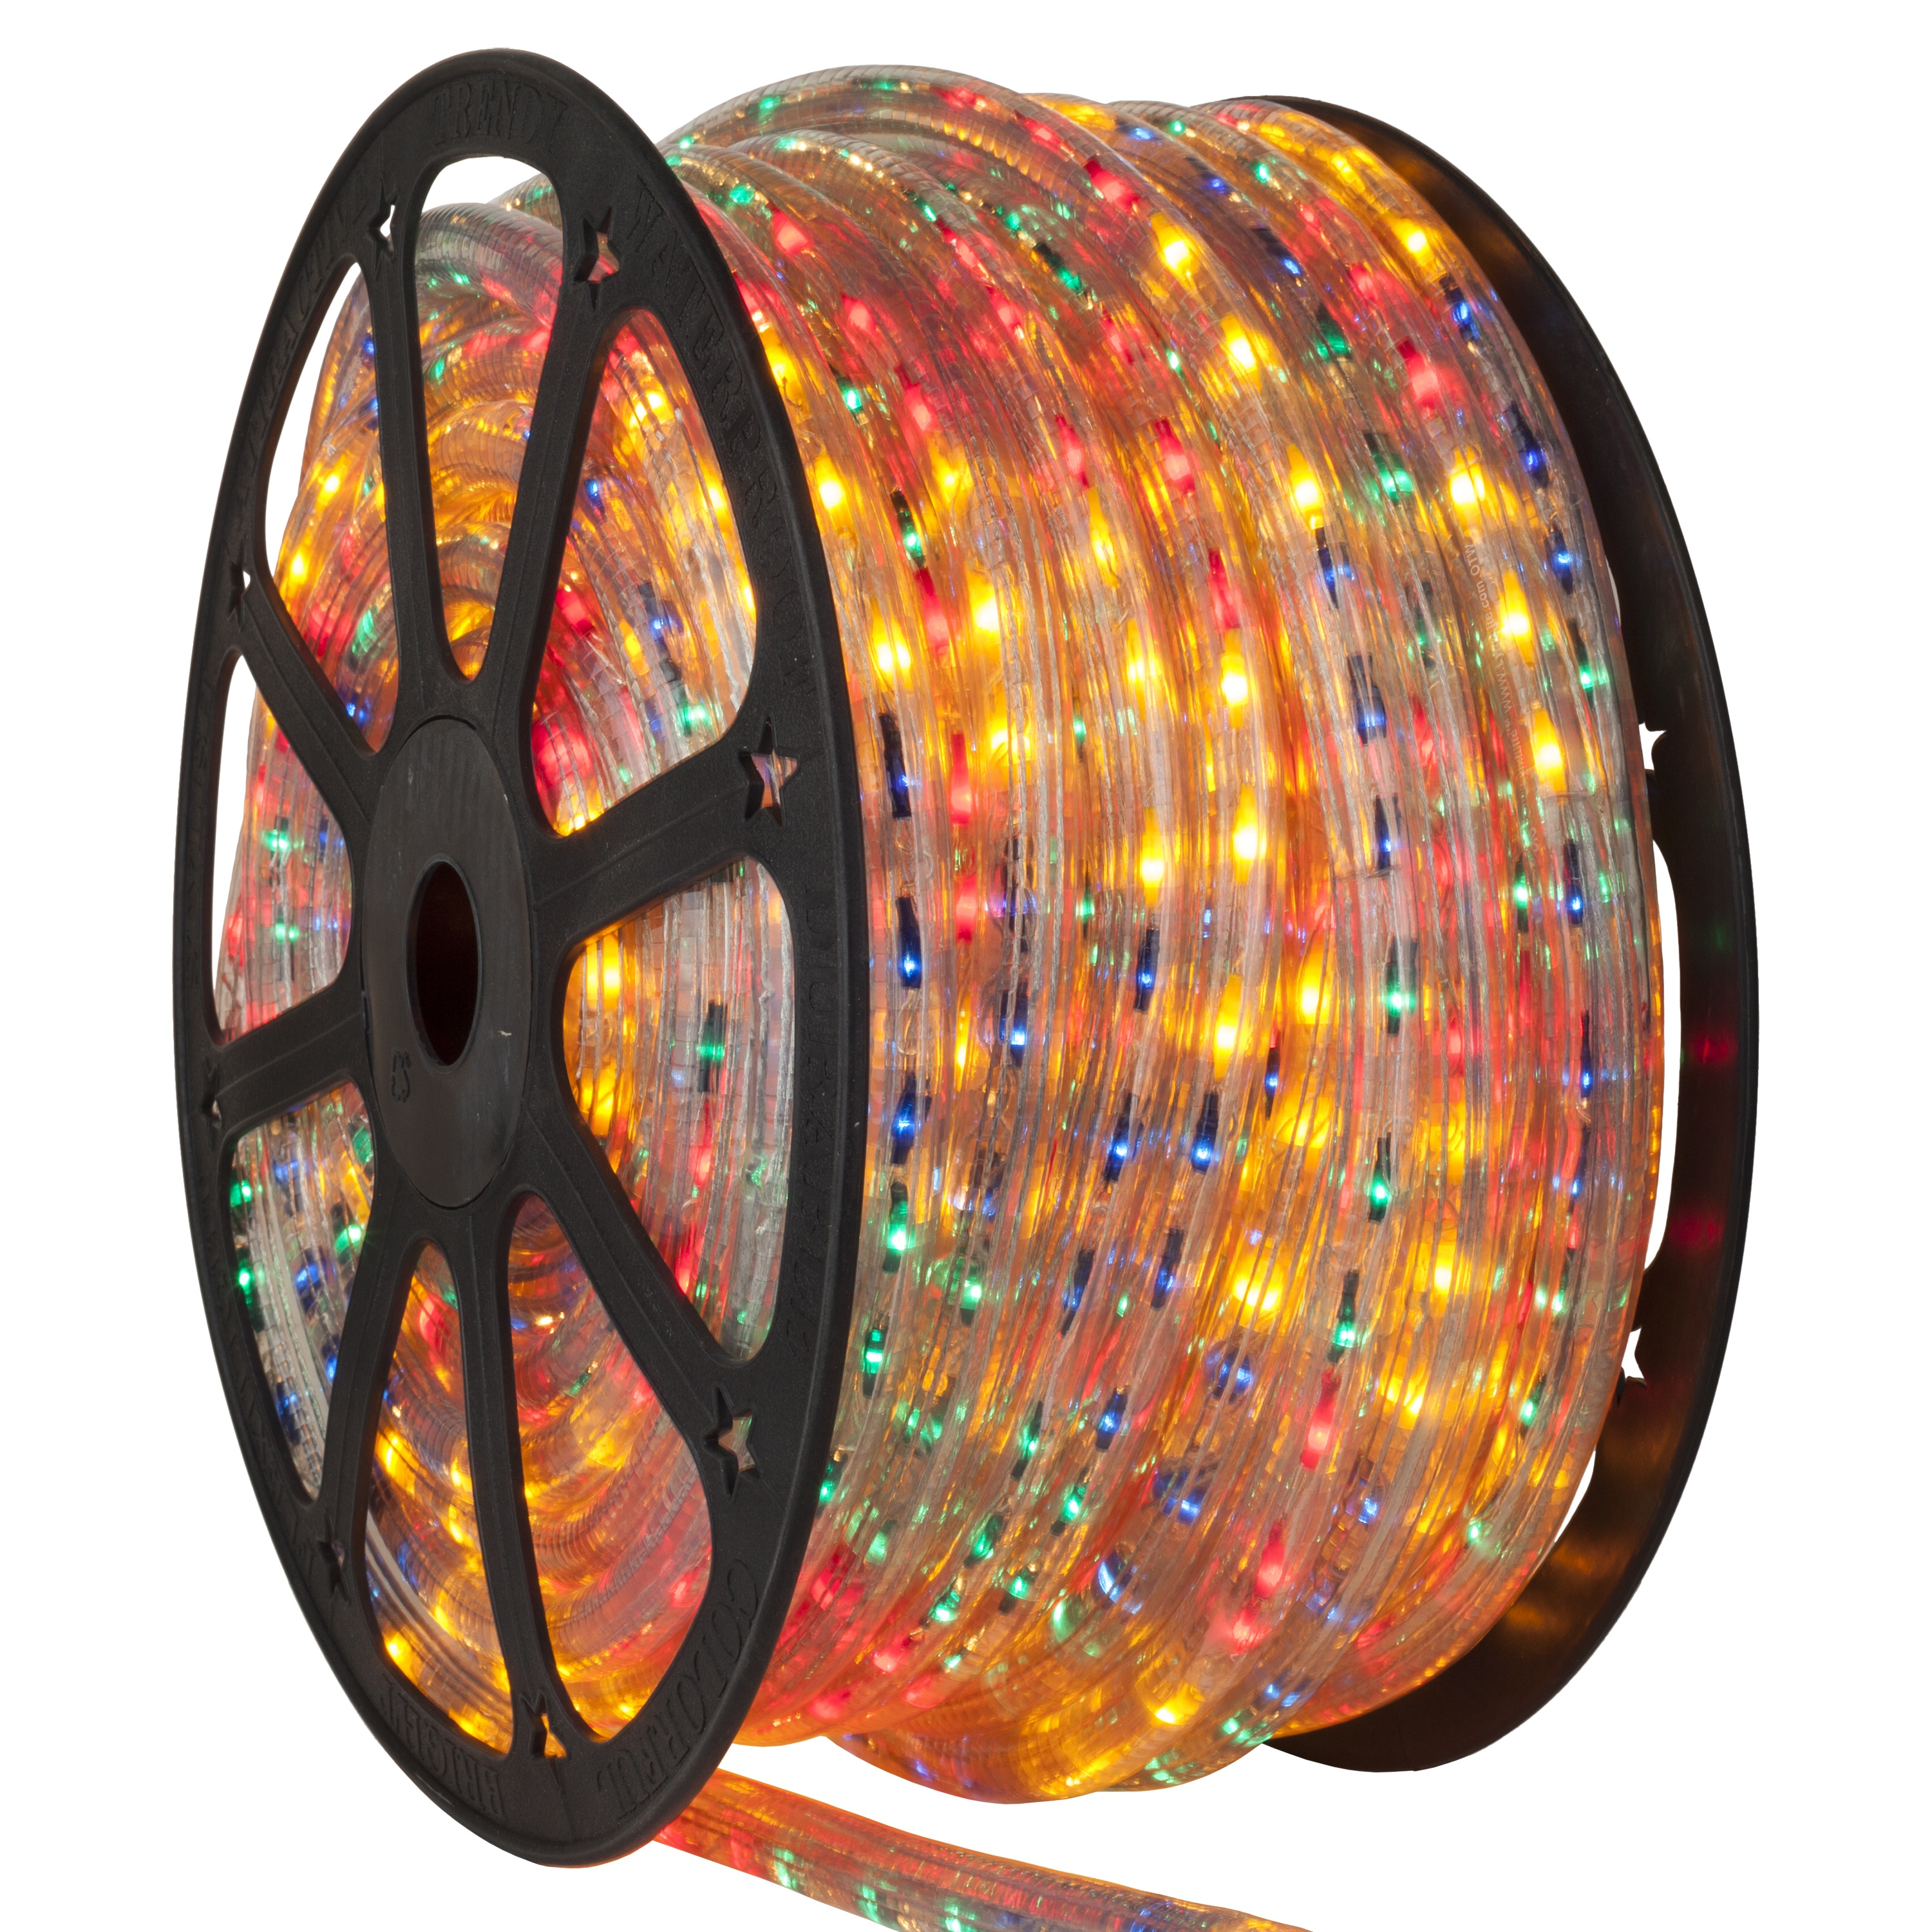 Multicolored Rope Light Spool